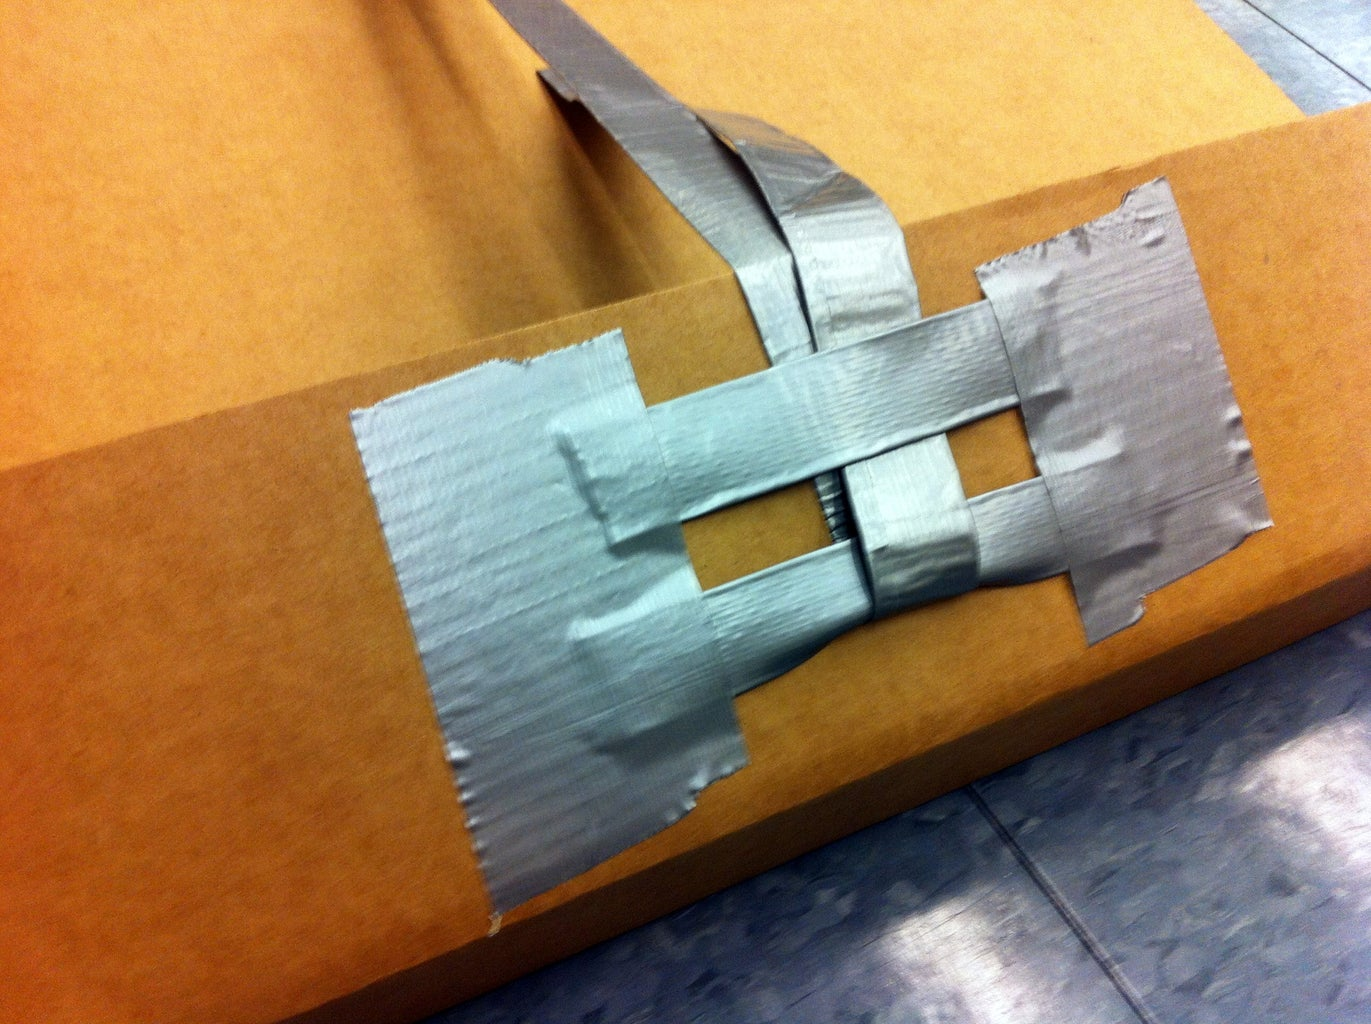 Duct Tape Buckle